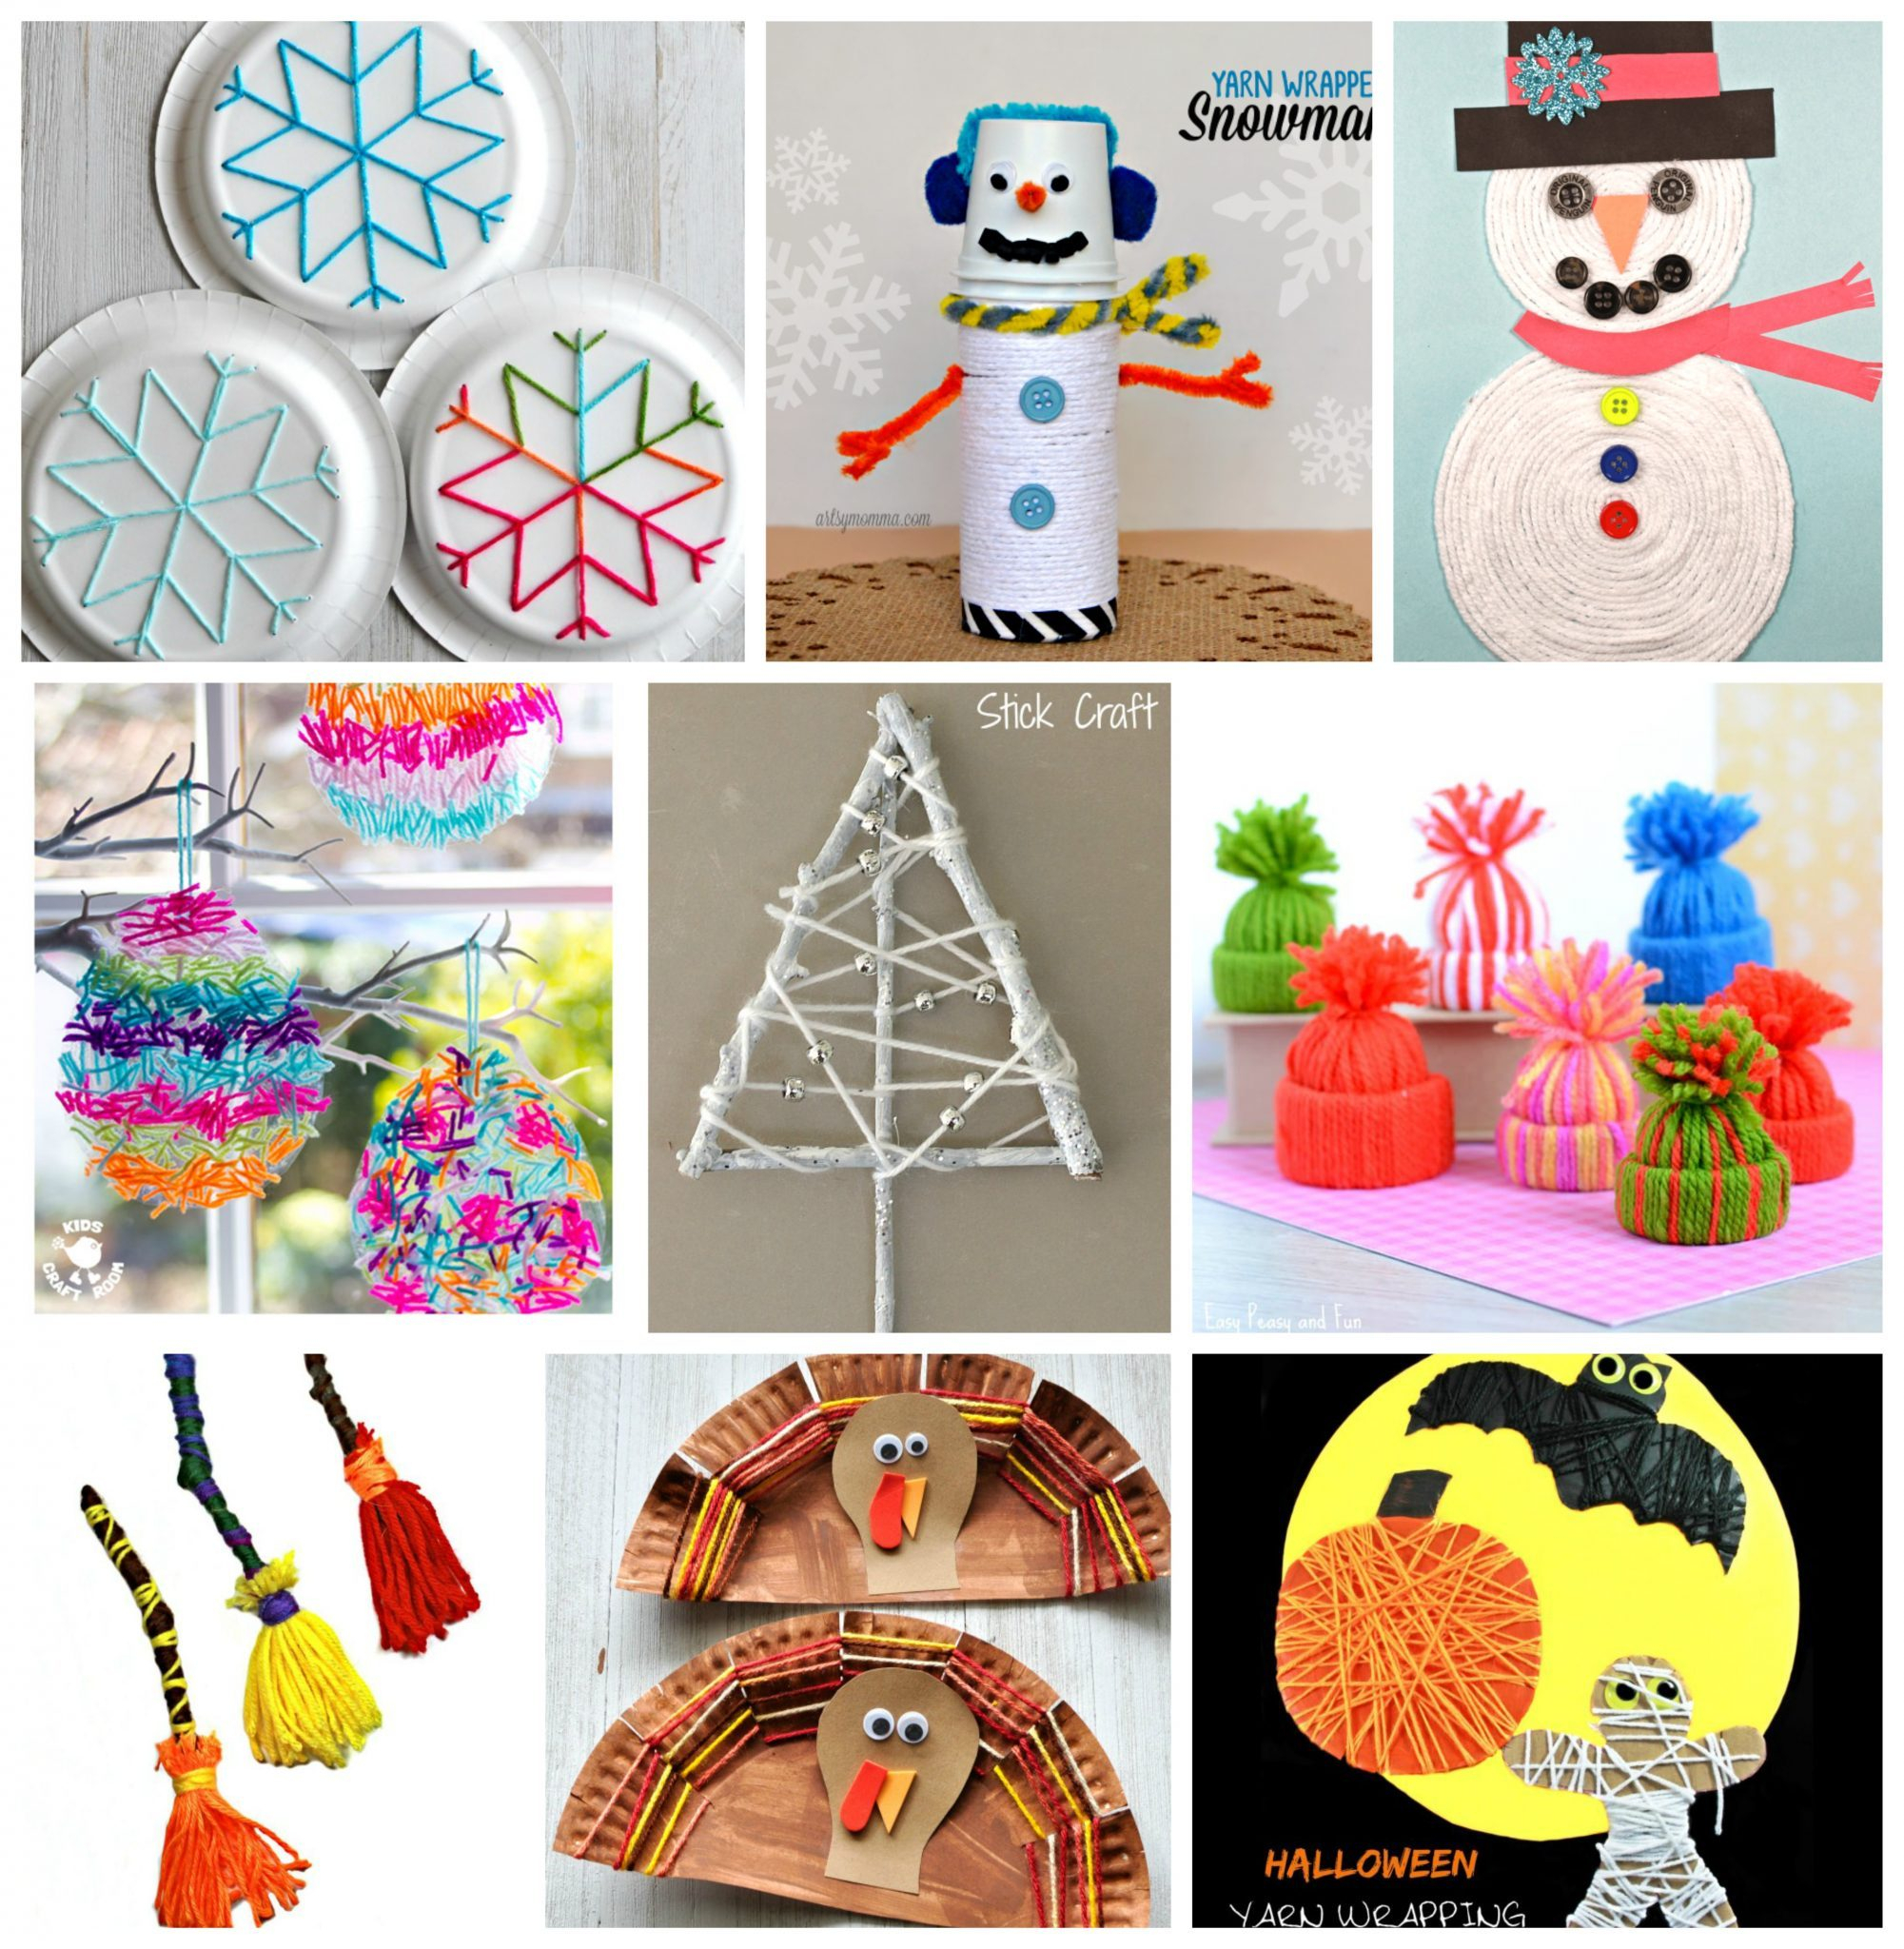 10 Great Easy Arts And Craft Ideas 40 fun fantastic yarn crafts the pinterested parent